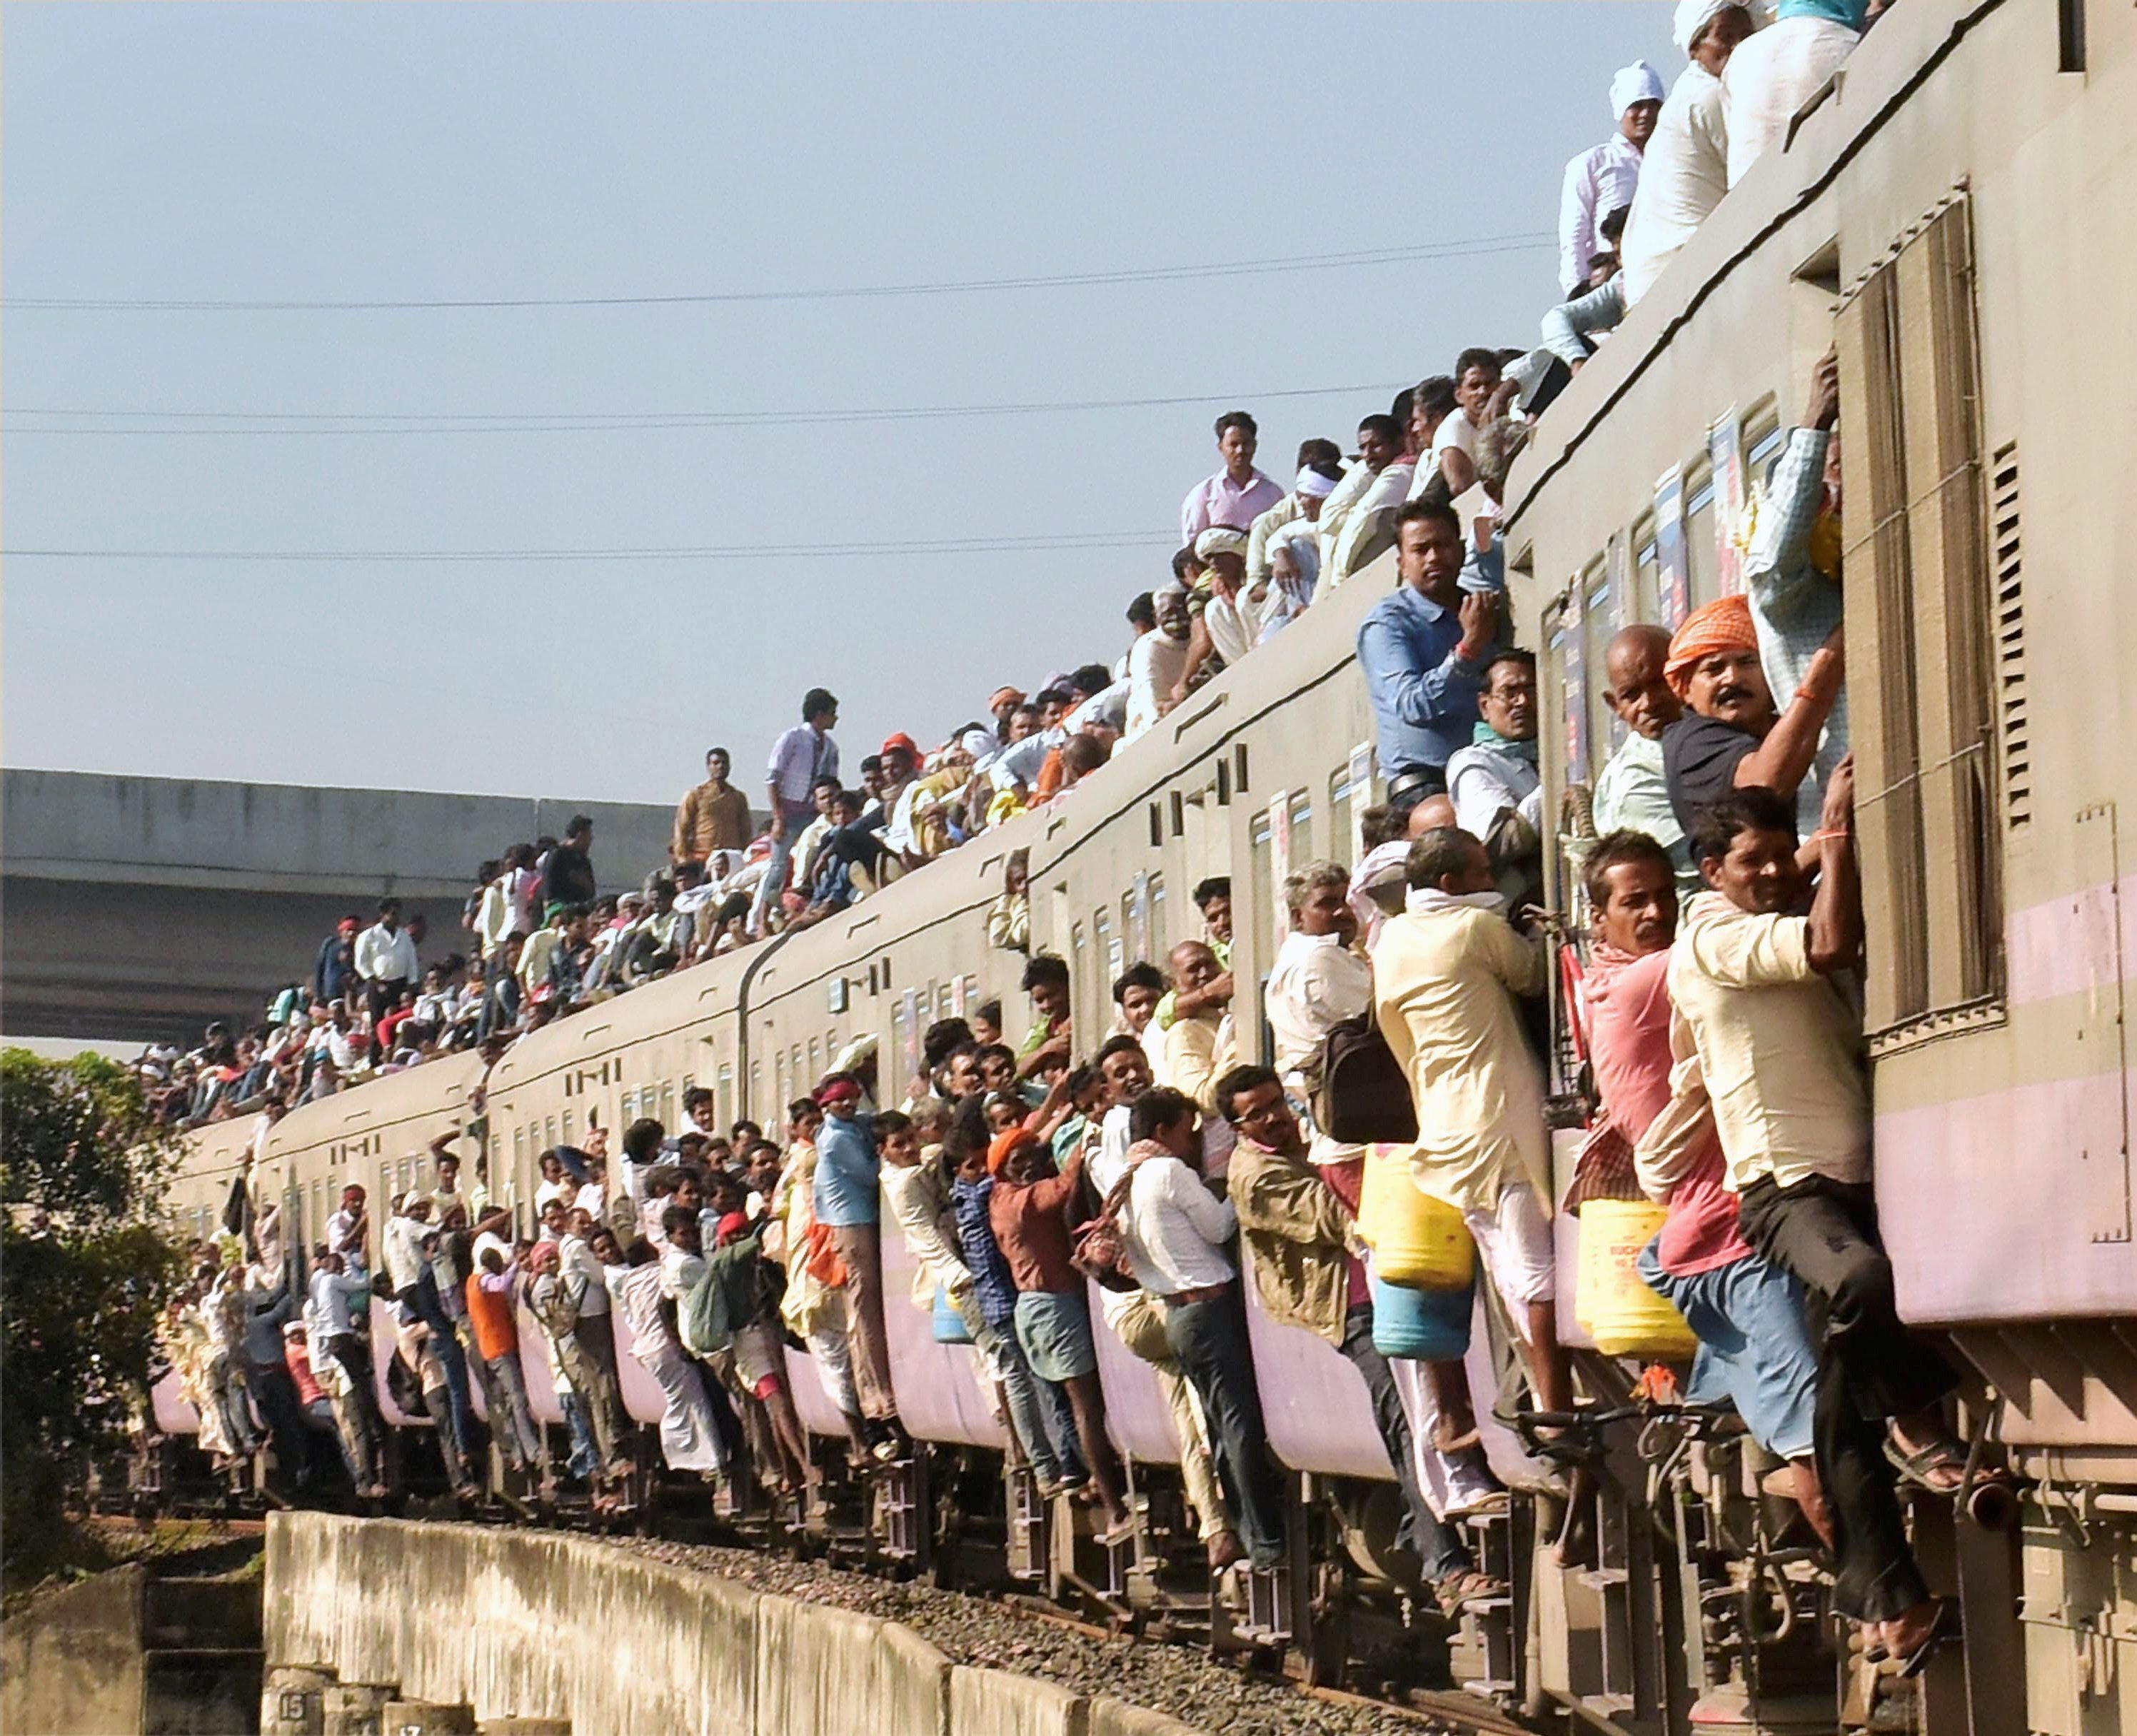 Passengers hang out of a train heading to Patna in Bihar, overcrowded by the Kartik Purnima rush . (Credit: PTI)